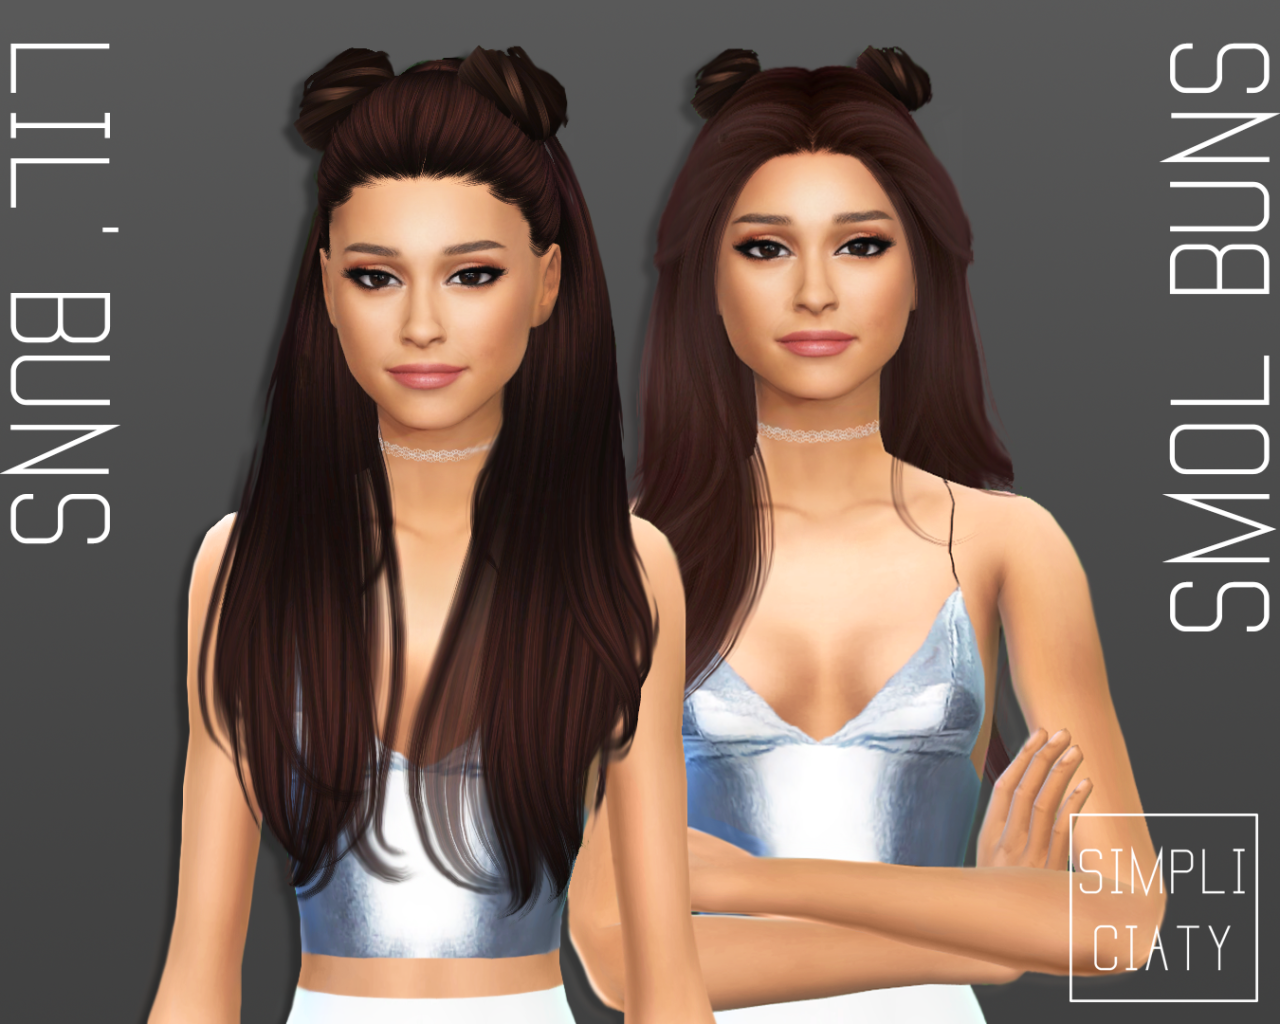 The sims 4 hair accessories - Accessory Hair Buns By Simpliciaty